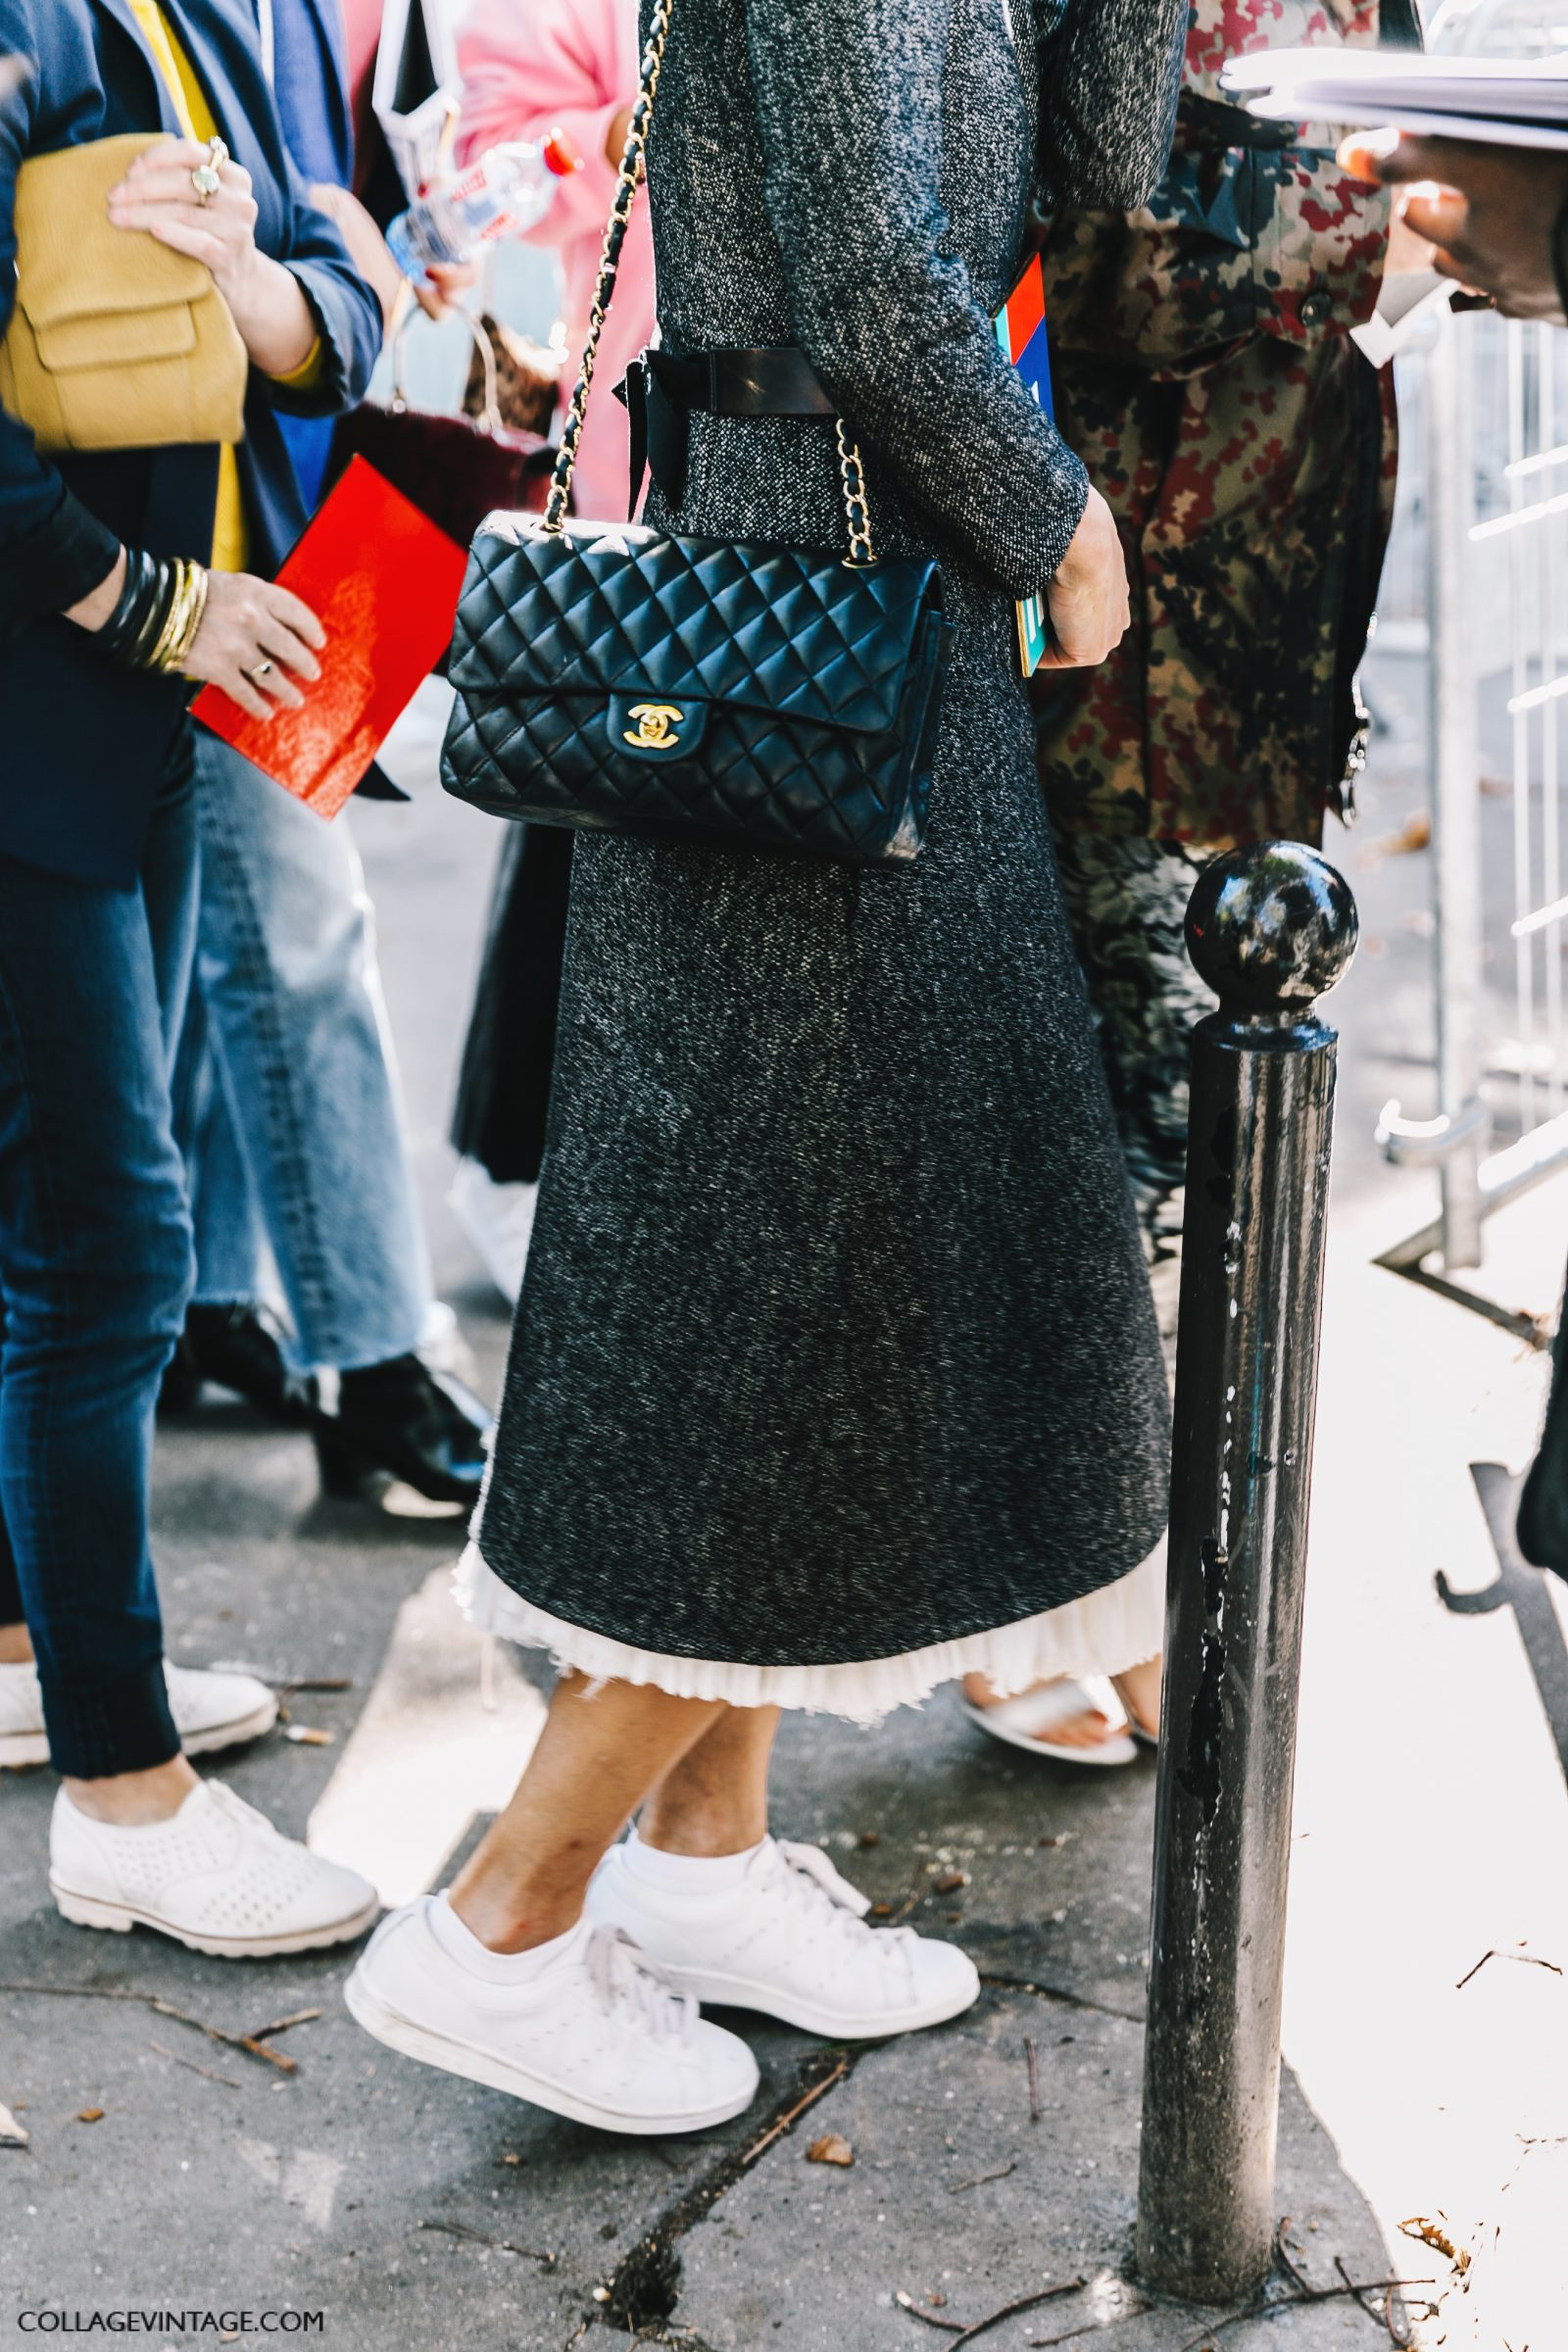 pfw-paris_fashion_week_ss17-street_style-outfit-collage_vintage-louis_vuitton-miu_miu-60